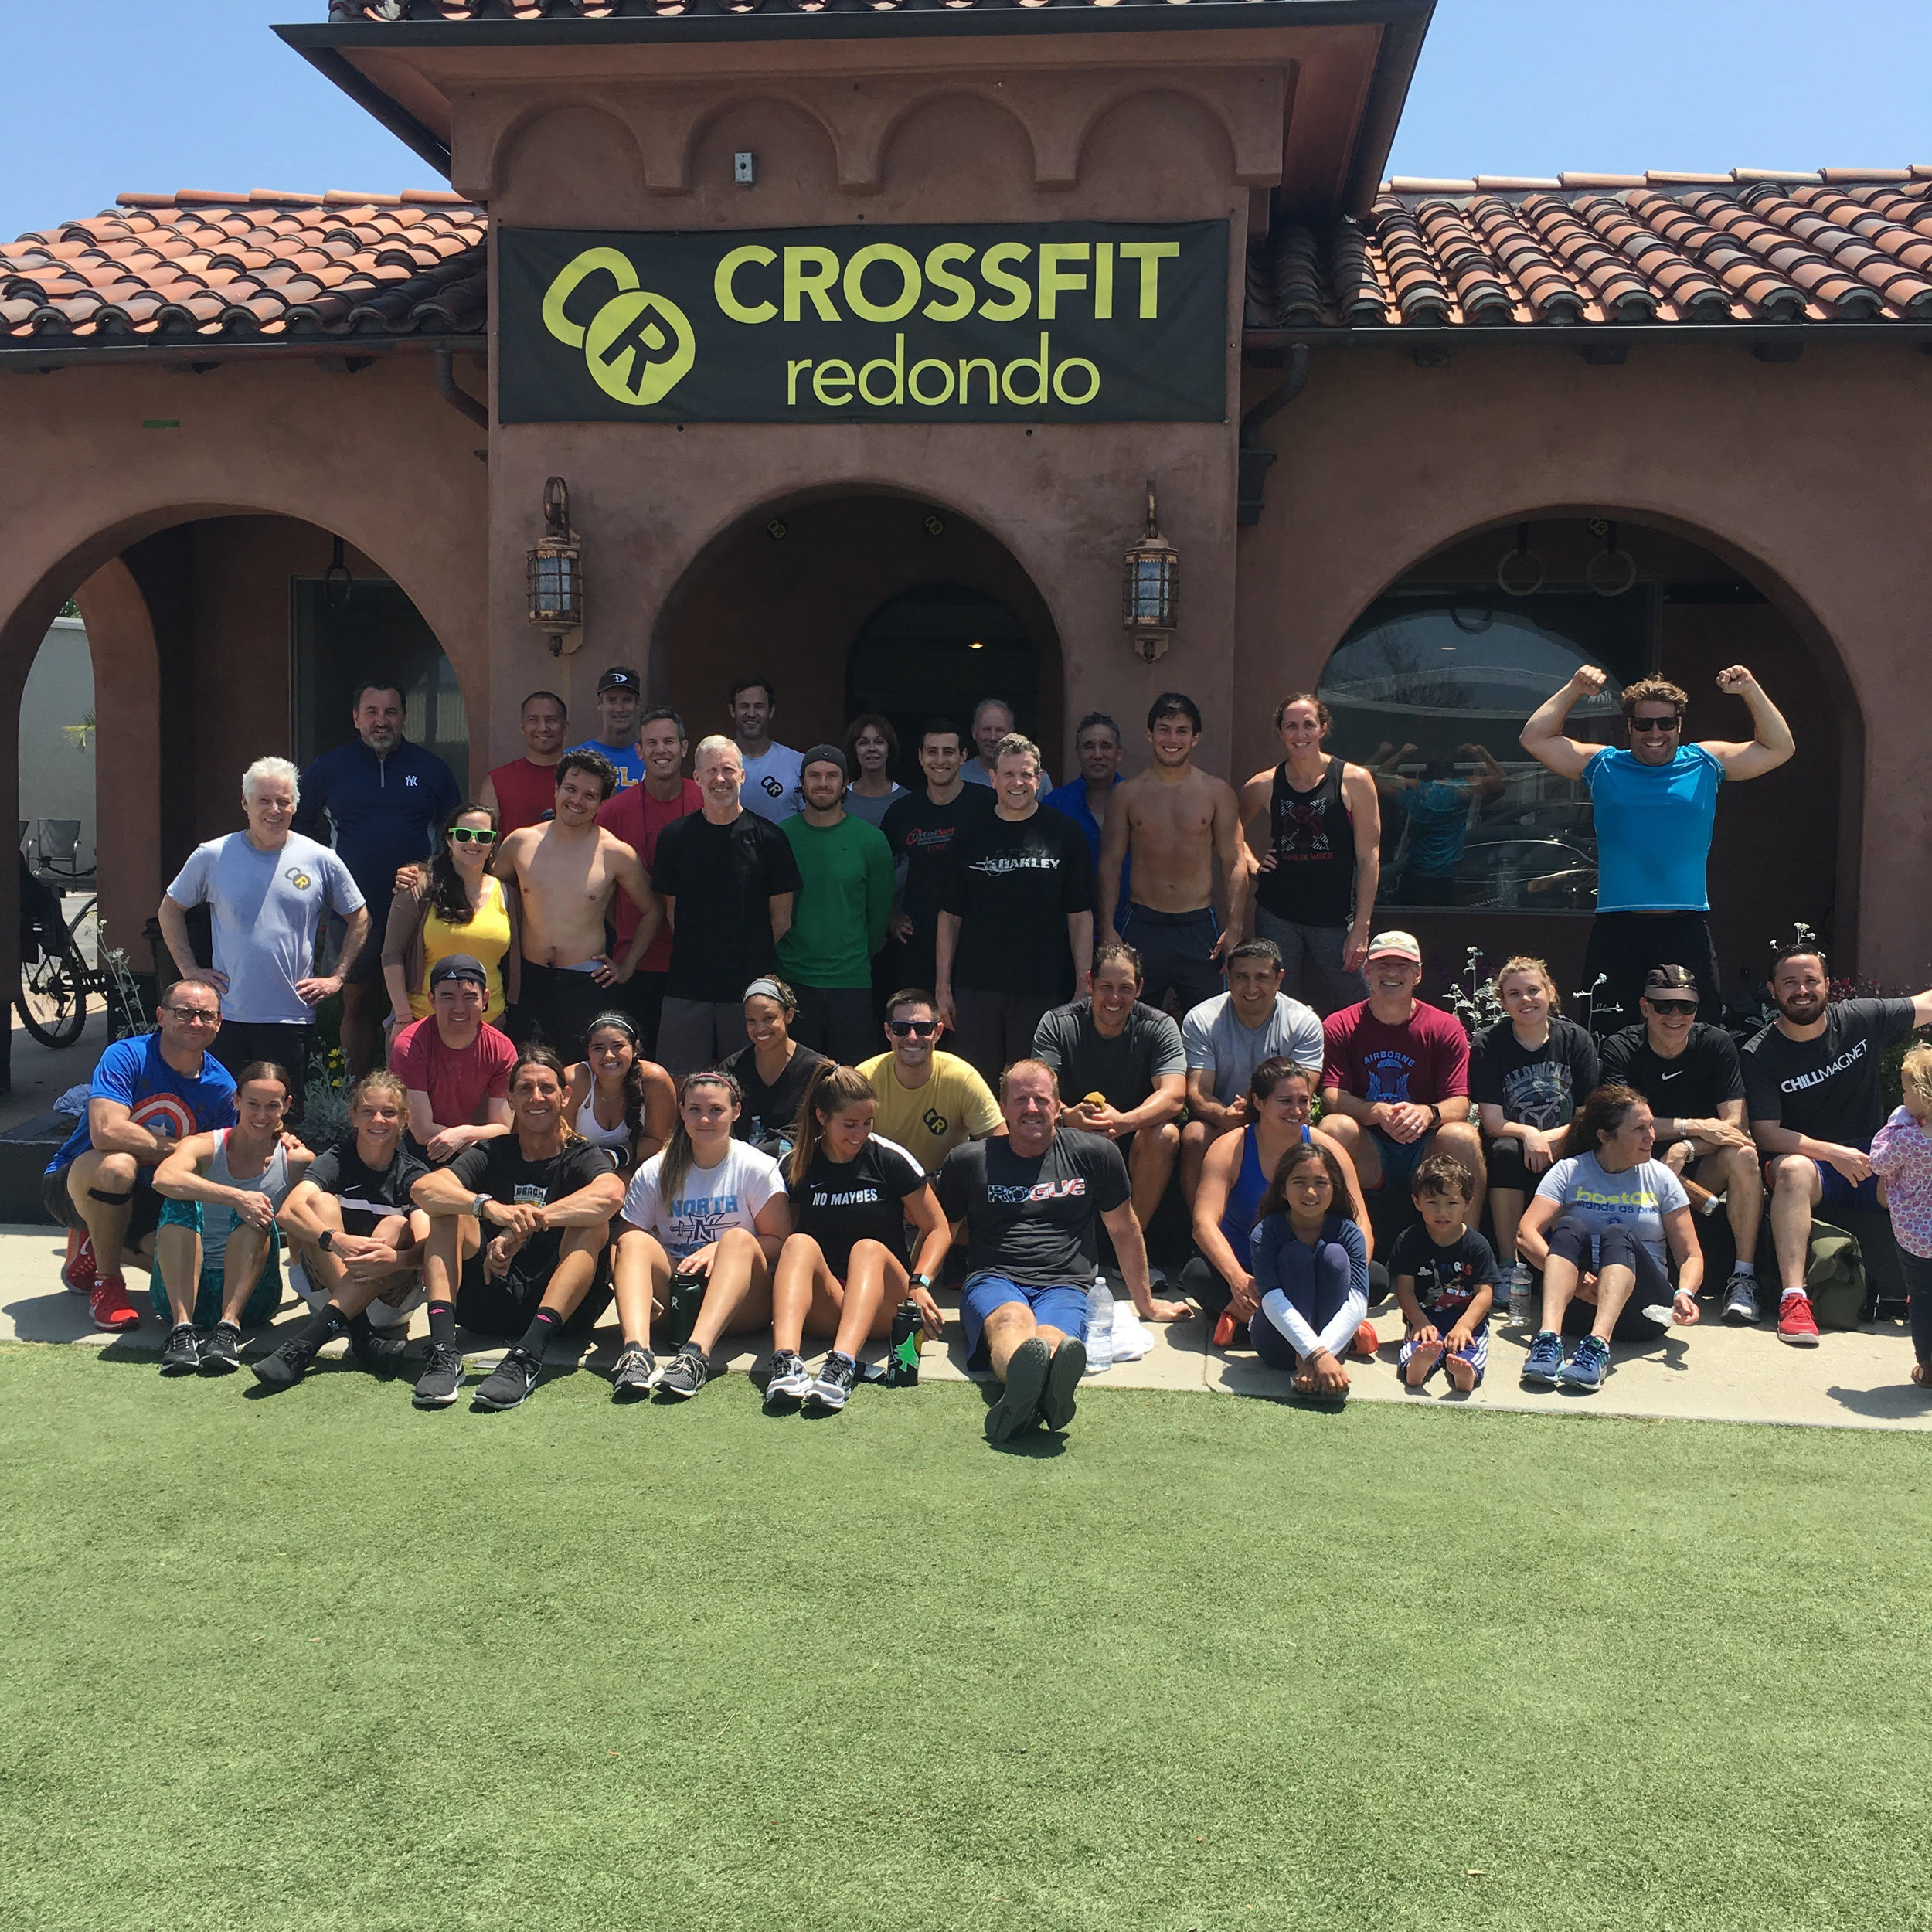 What a turnout! Congrats to all who did Murph on Monday!